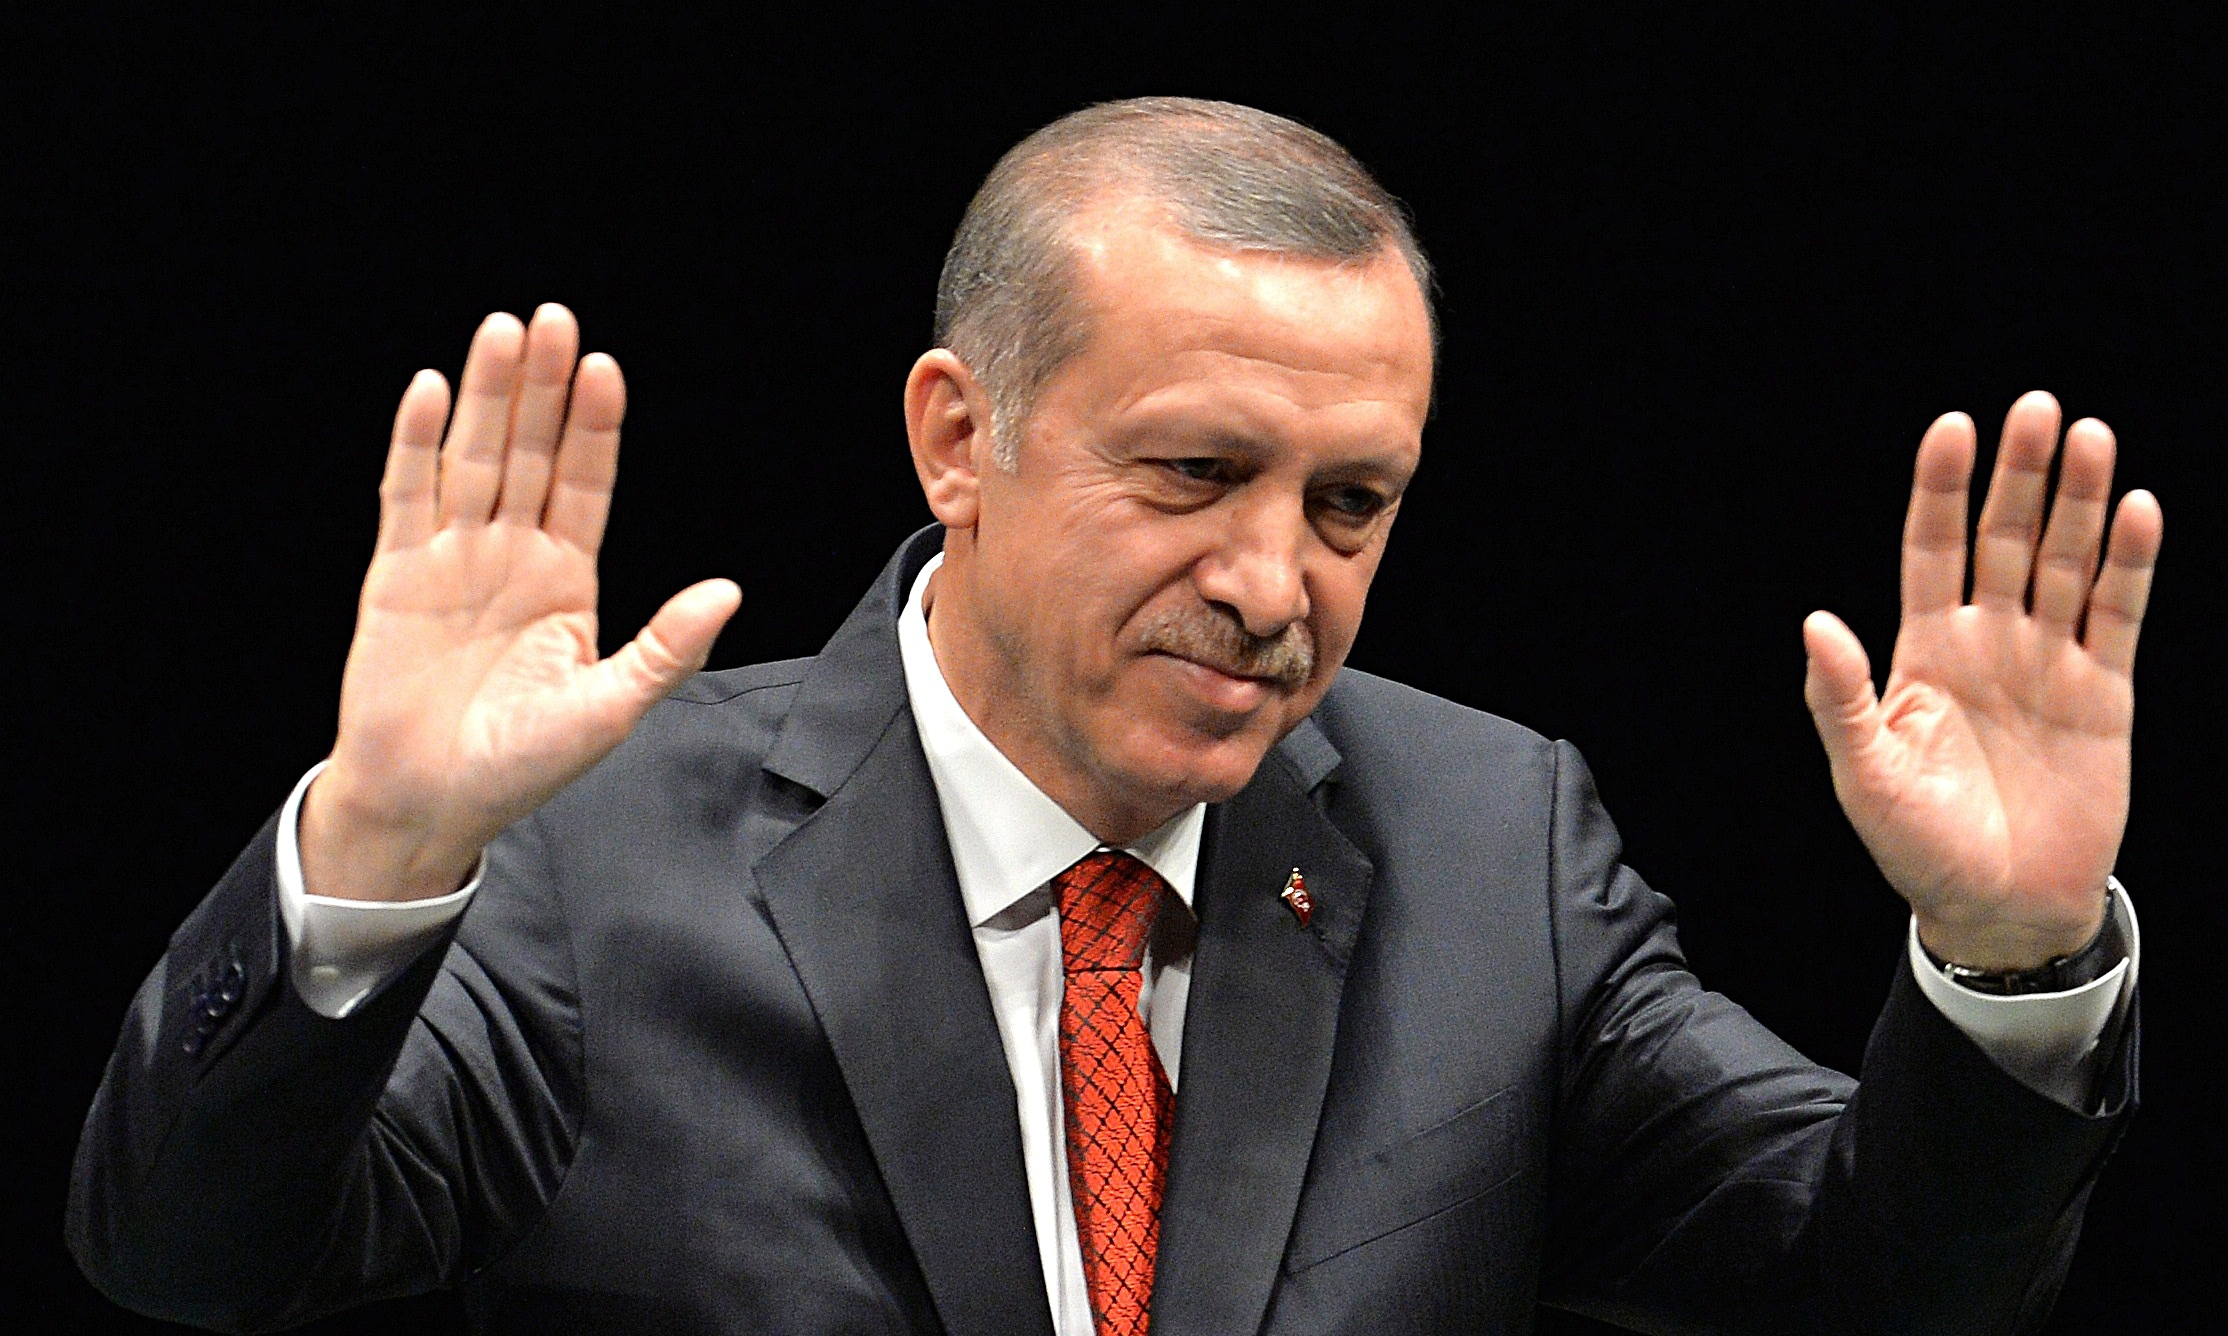 Turkey may ban Facebook and YouTube if Erdoğan wins elections